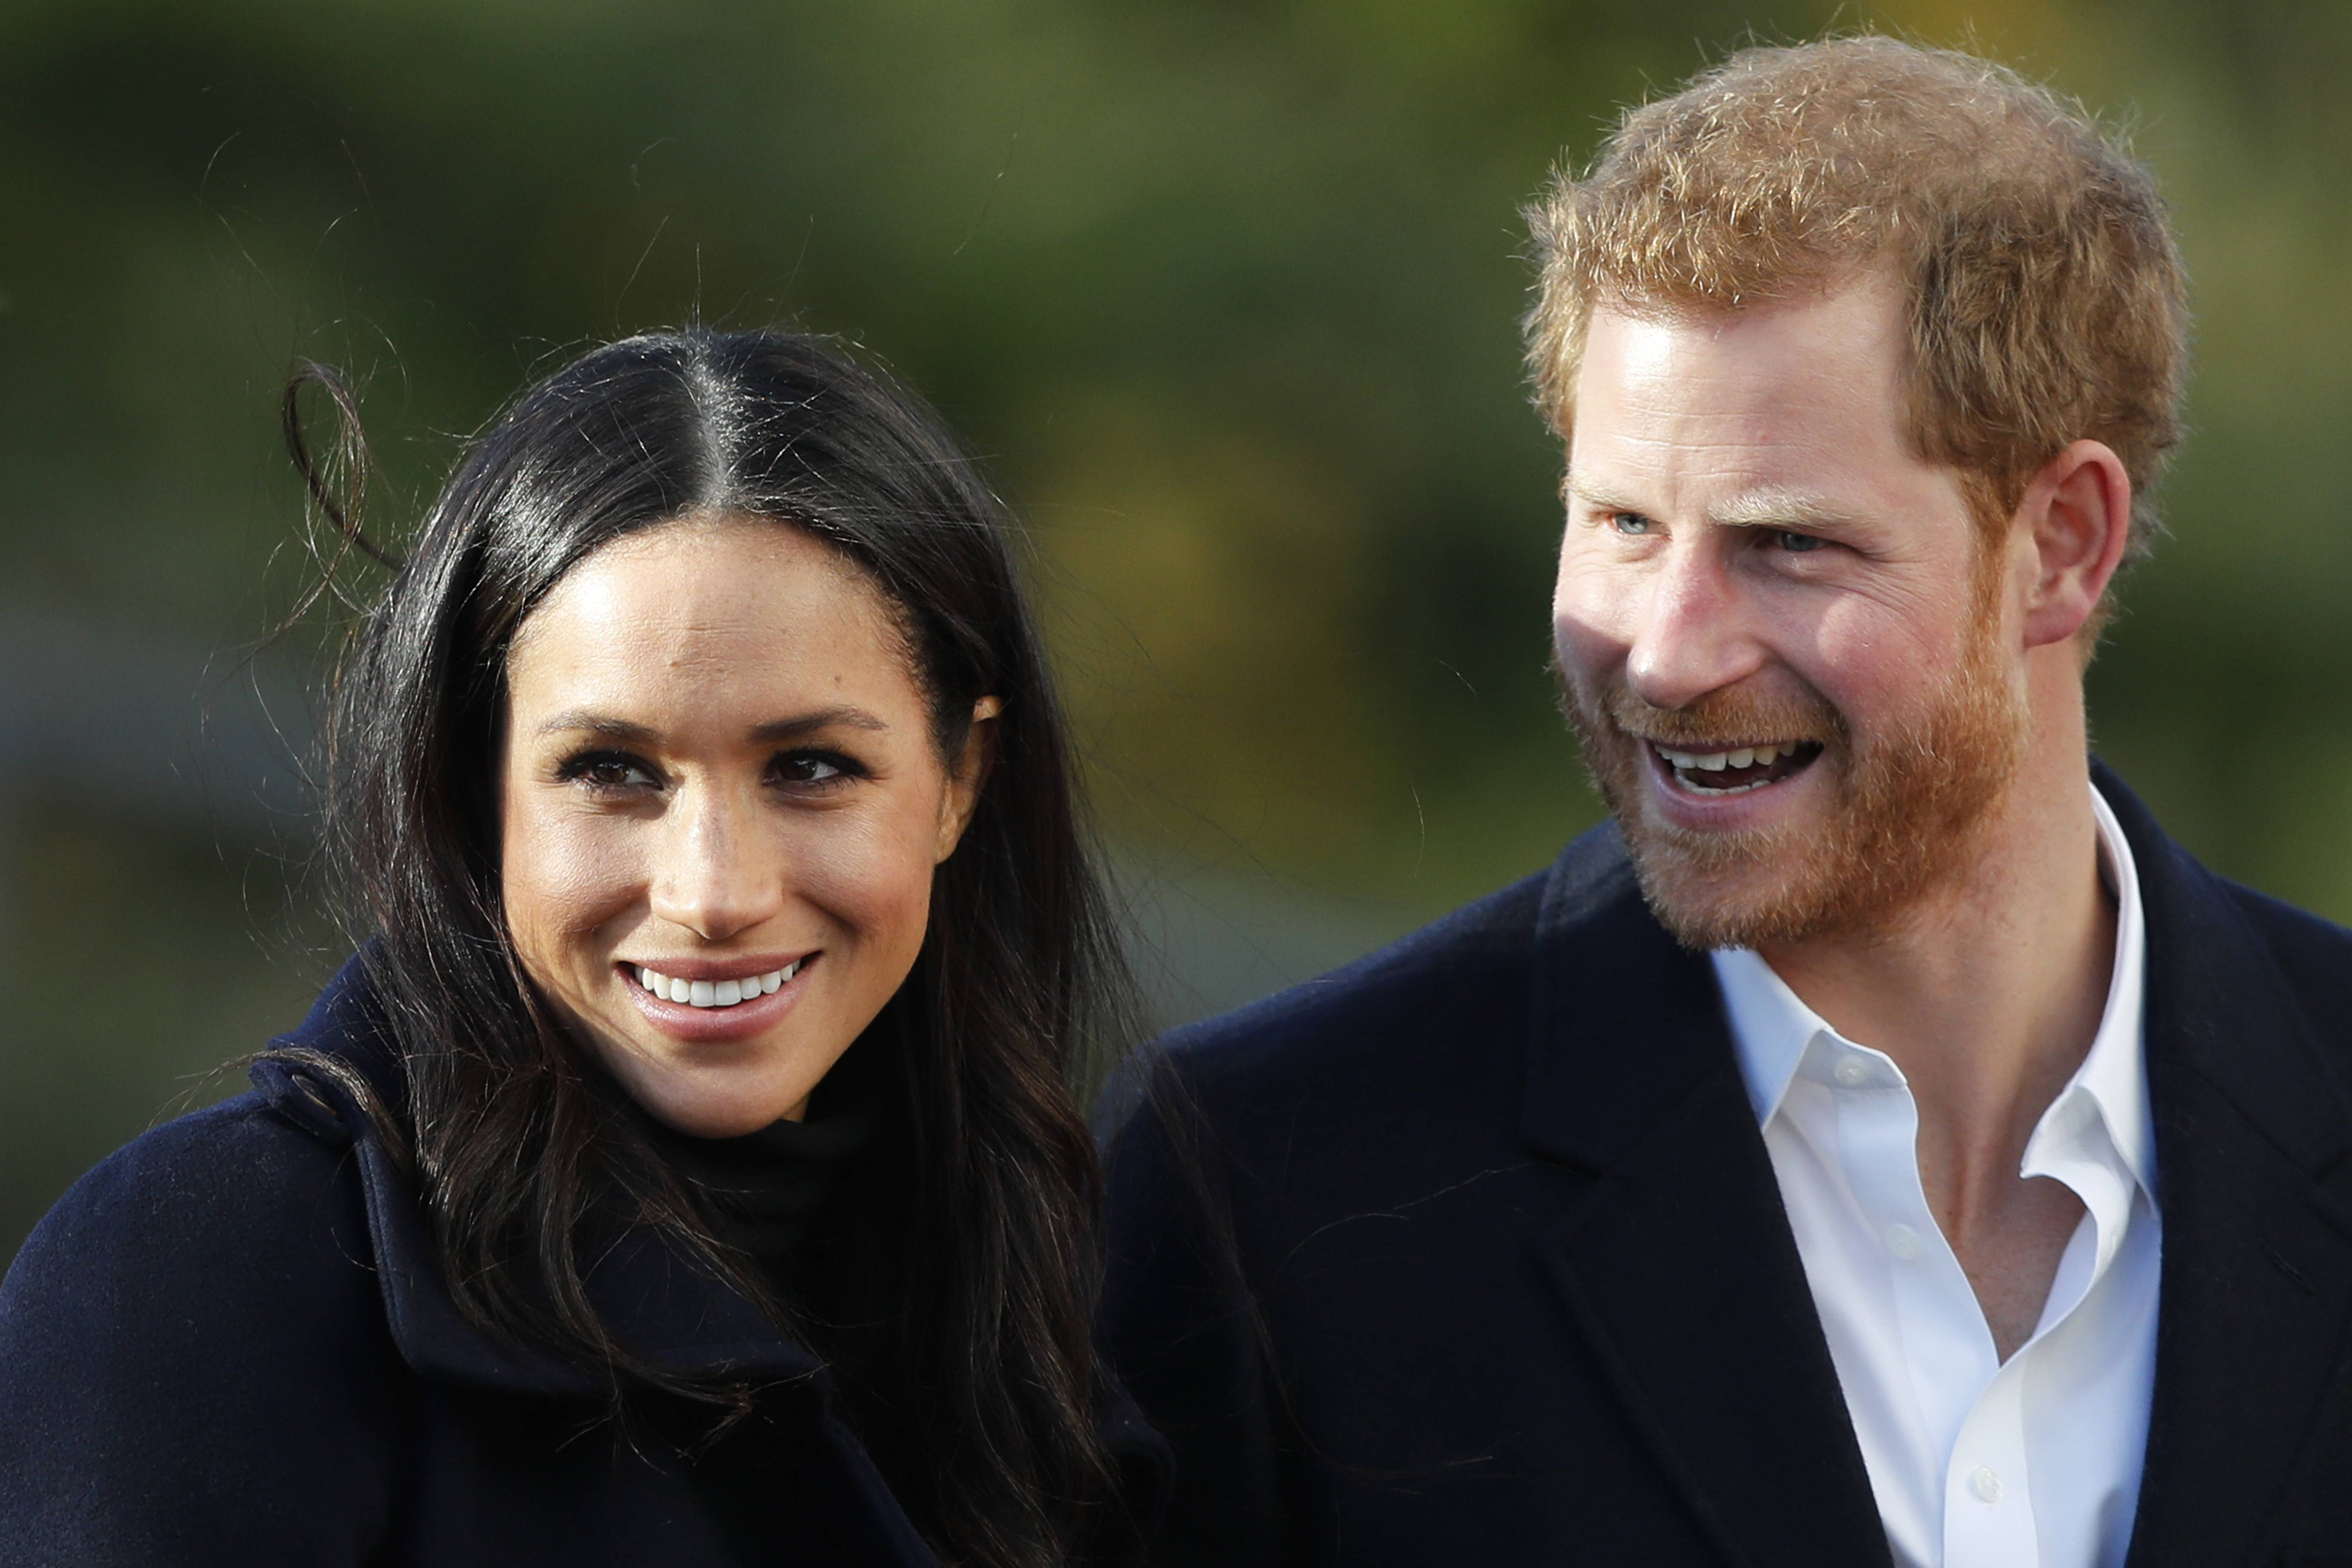 Meghan Markle, whose engagement to Prince Harry charmed the world, was the most-searched-for actor in the world on Google in 2017.